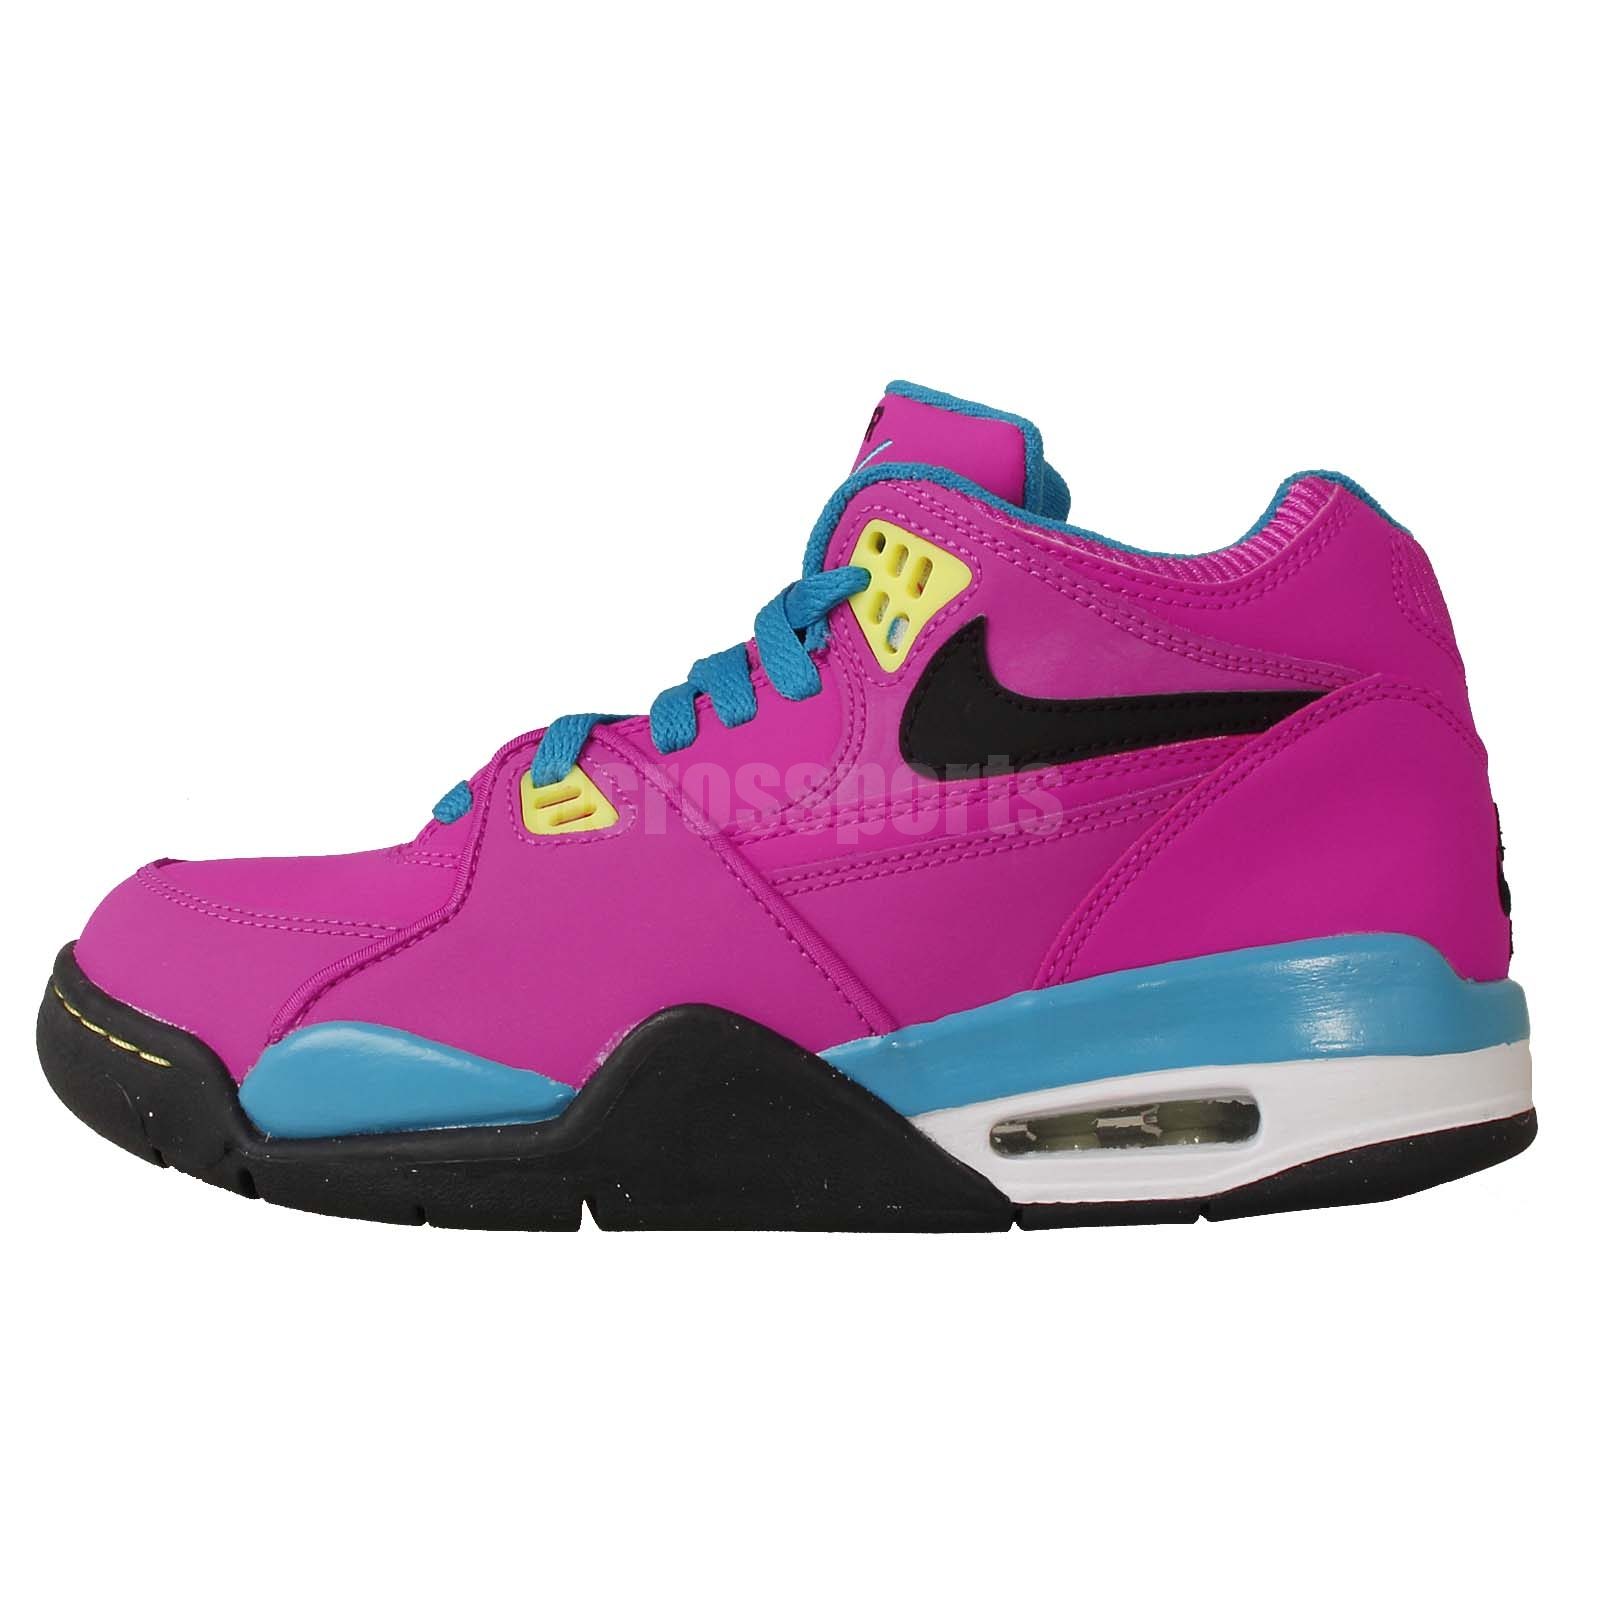 nike air flight 89 gs pink blue black girls youth womens